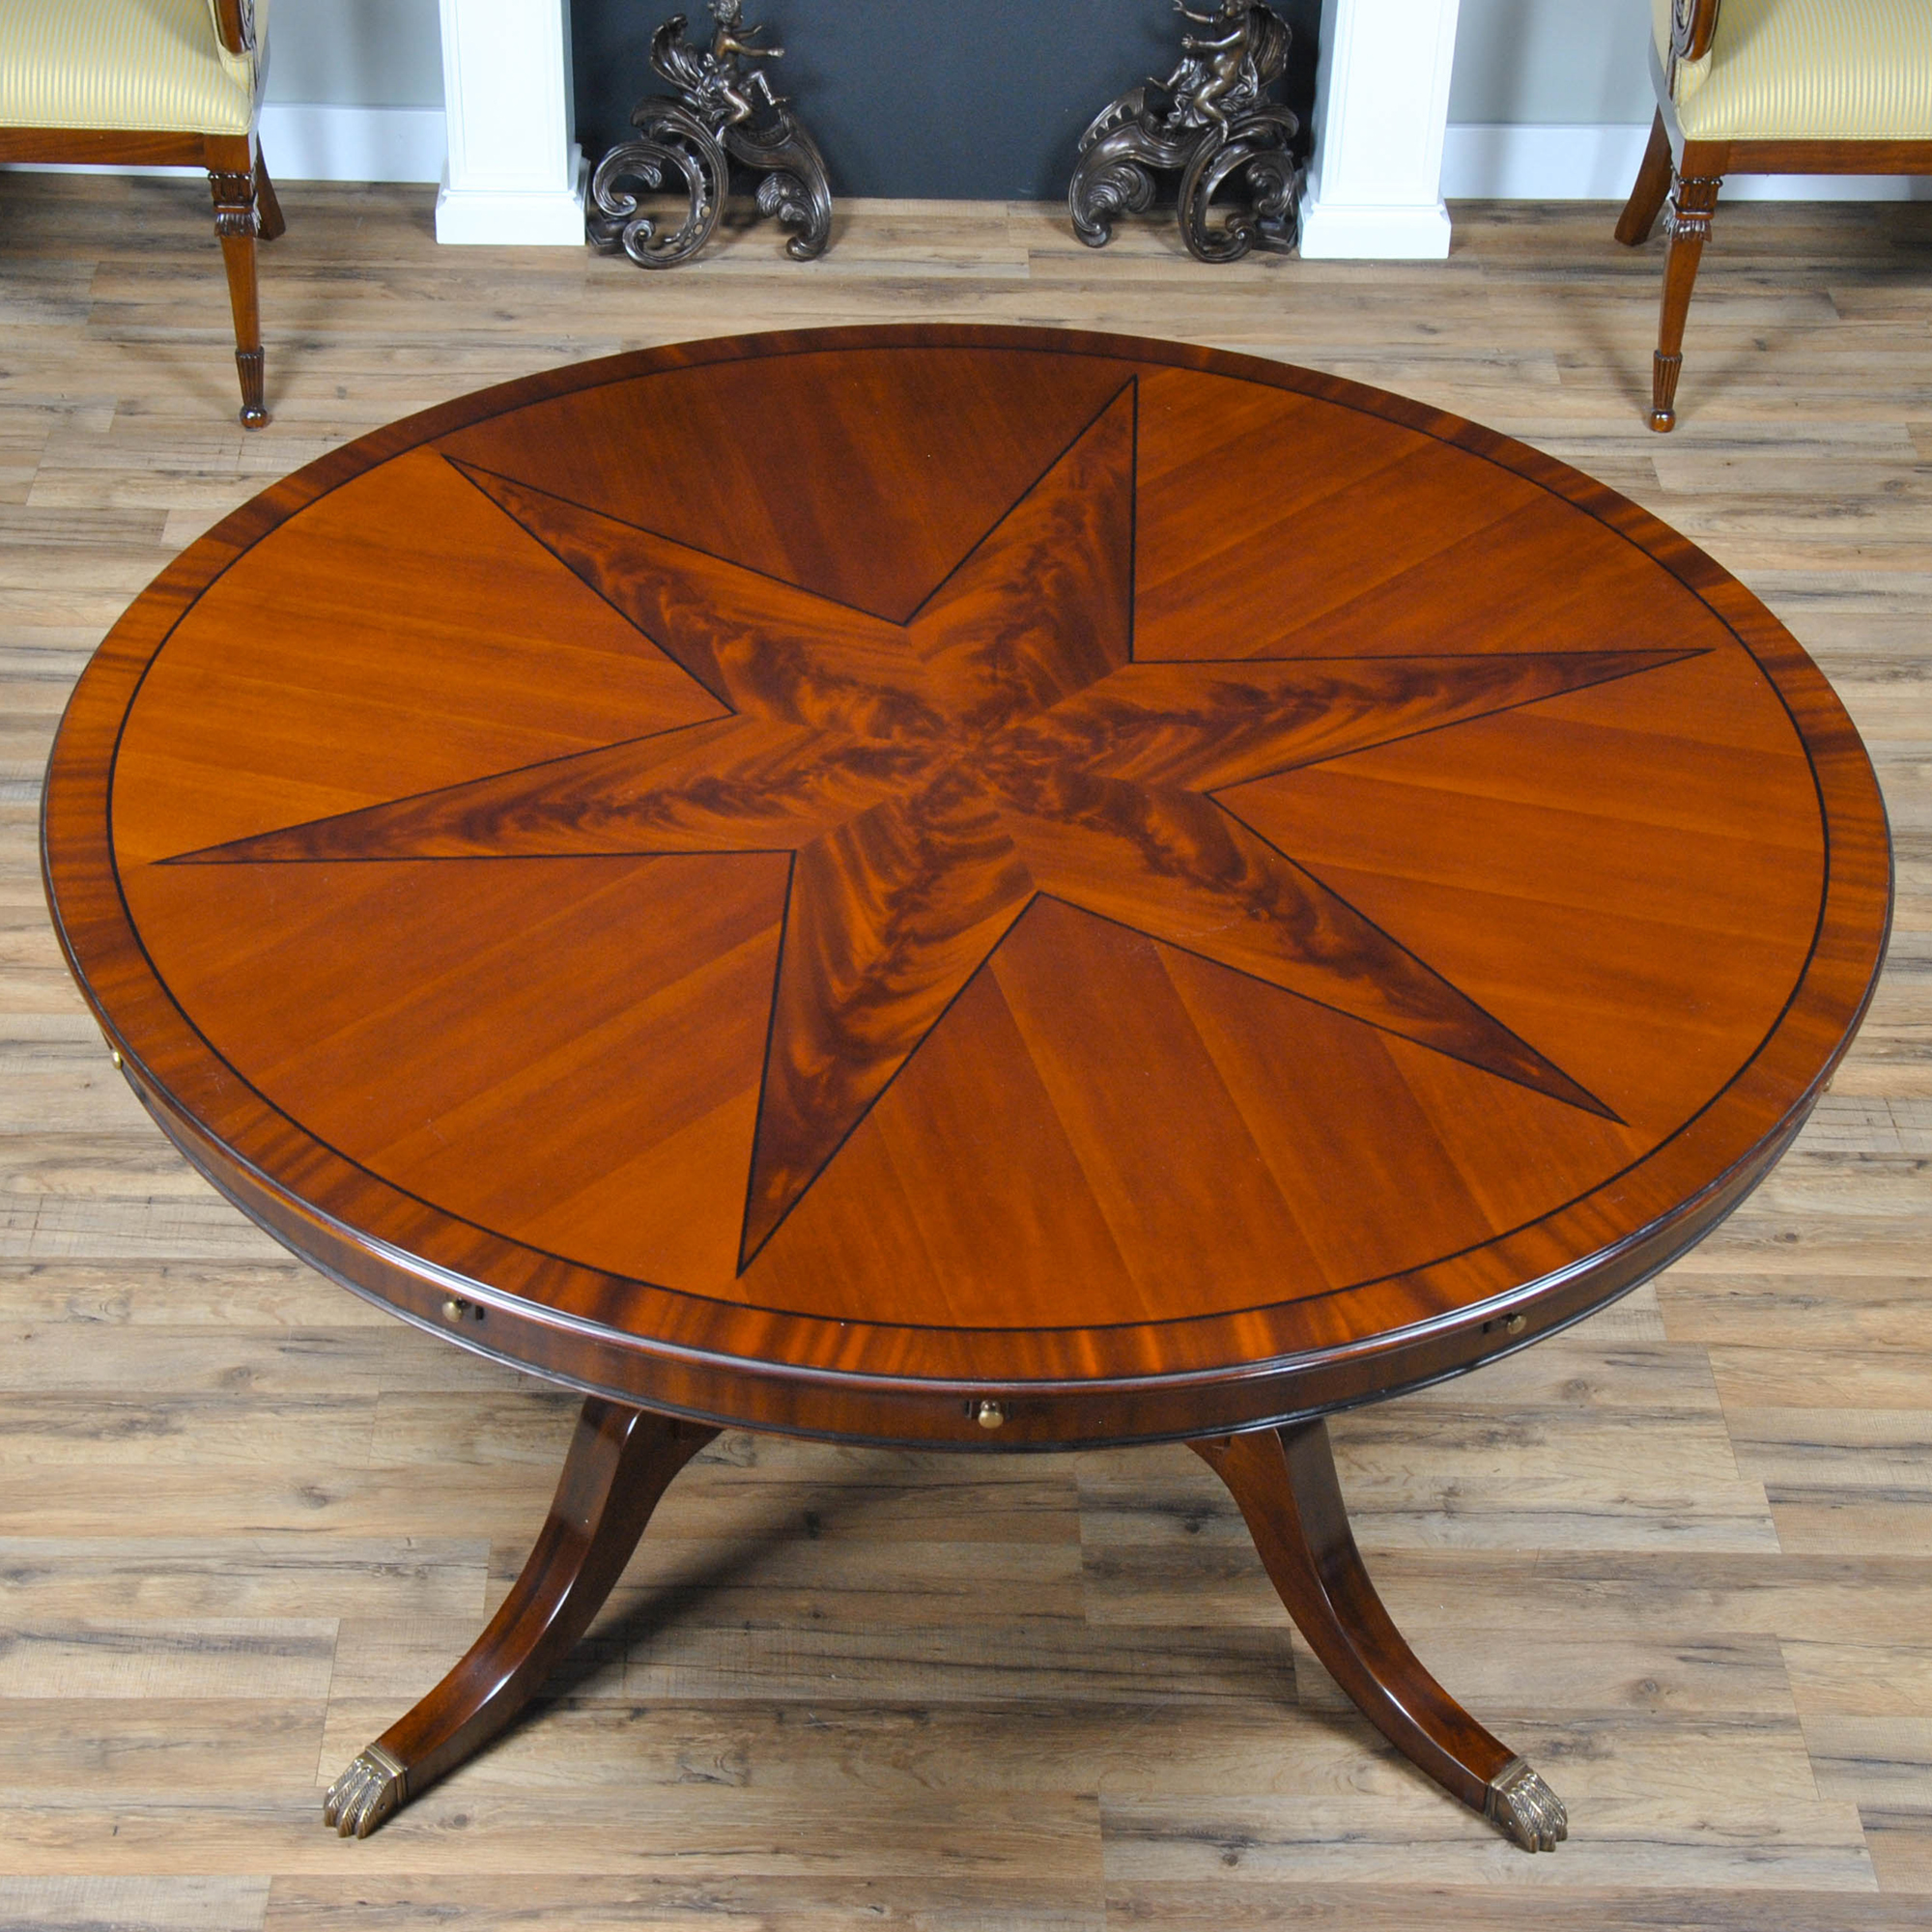 Star Perimeter Dining Table Niagara Furniture Round